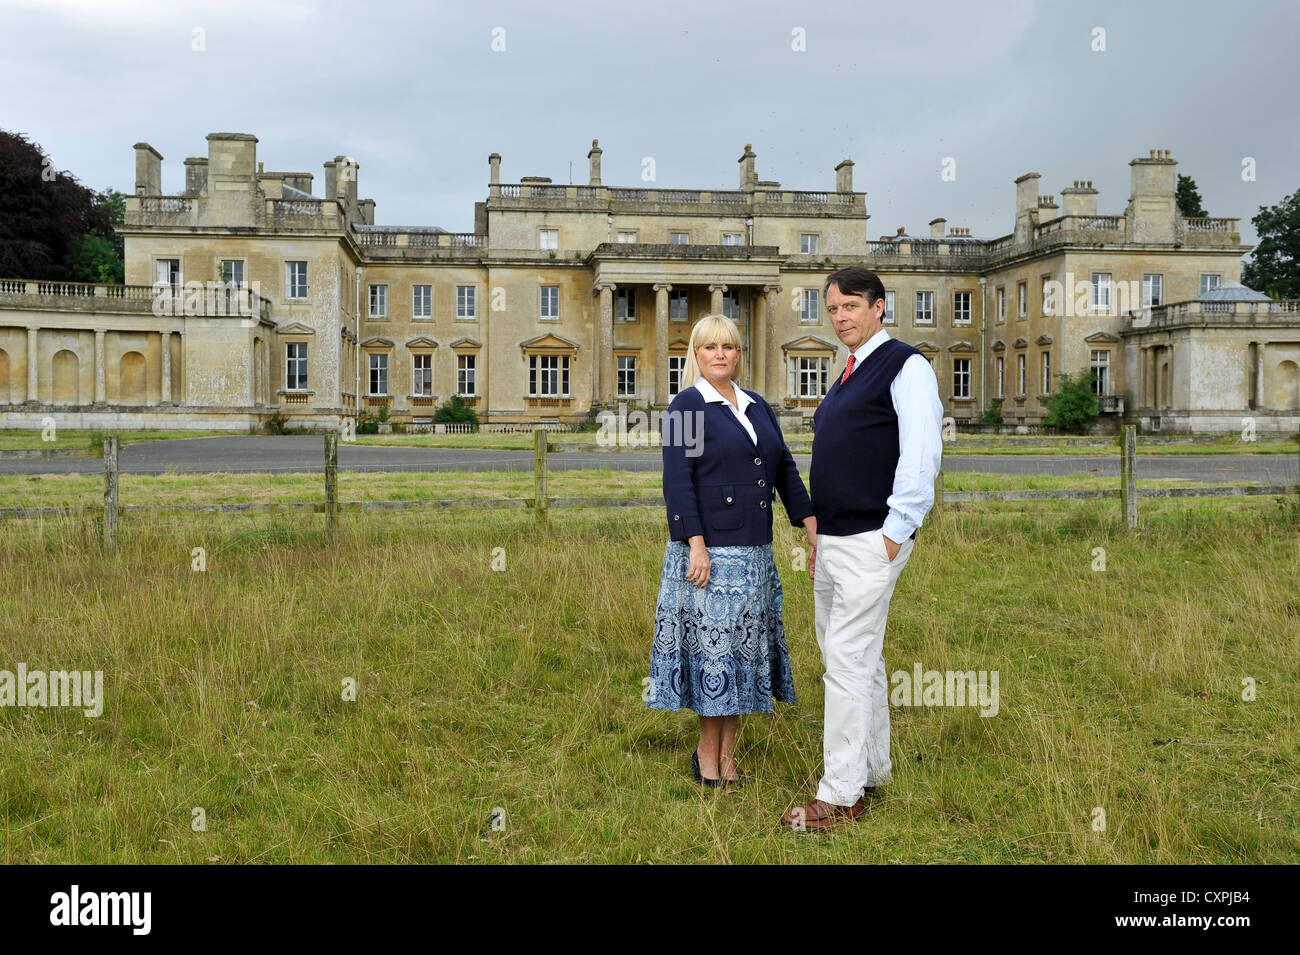 David Brudenell-Bruce Earl of Cardigan pictured with his second wife Joanne outside Tottenham House on the Severnake - Stock Image